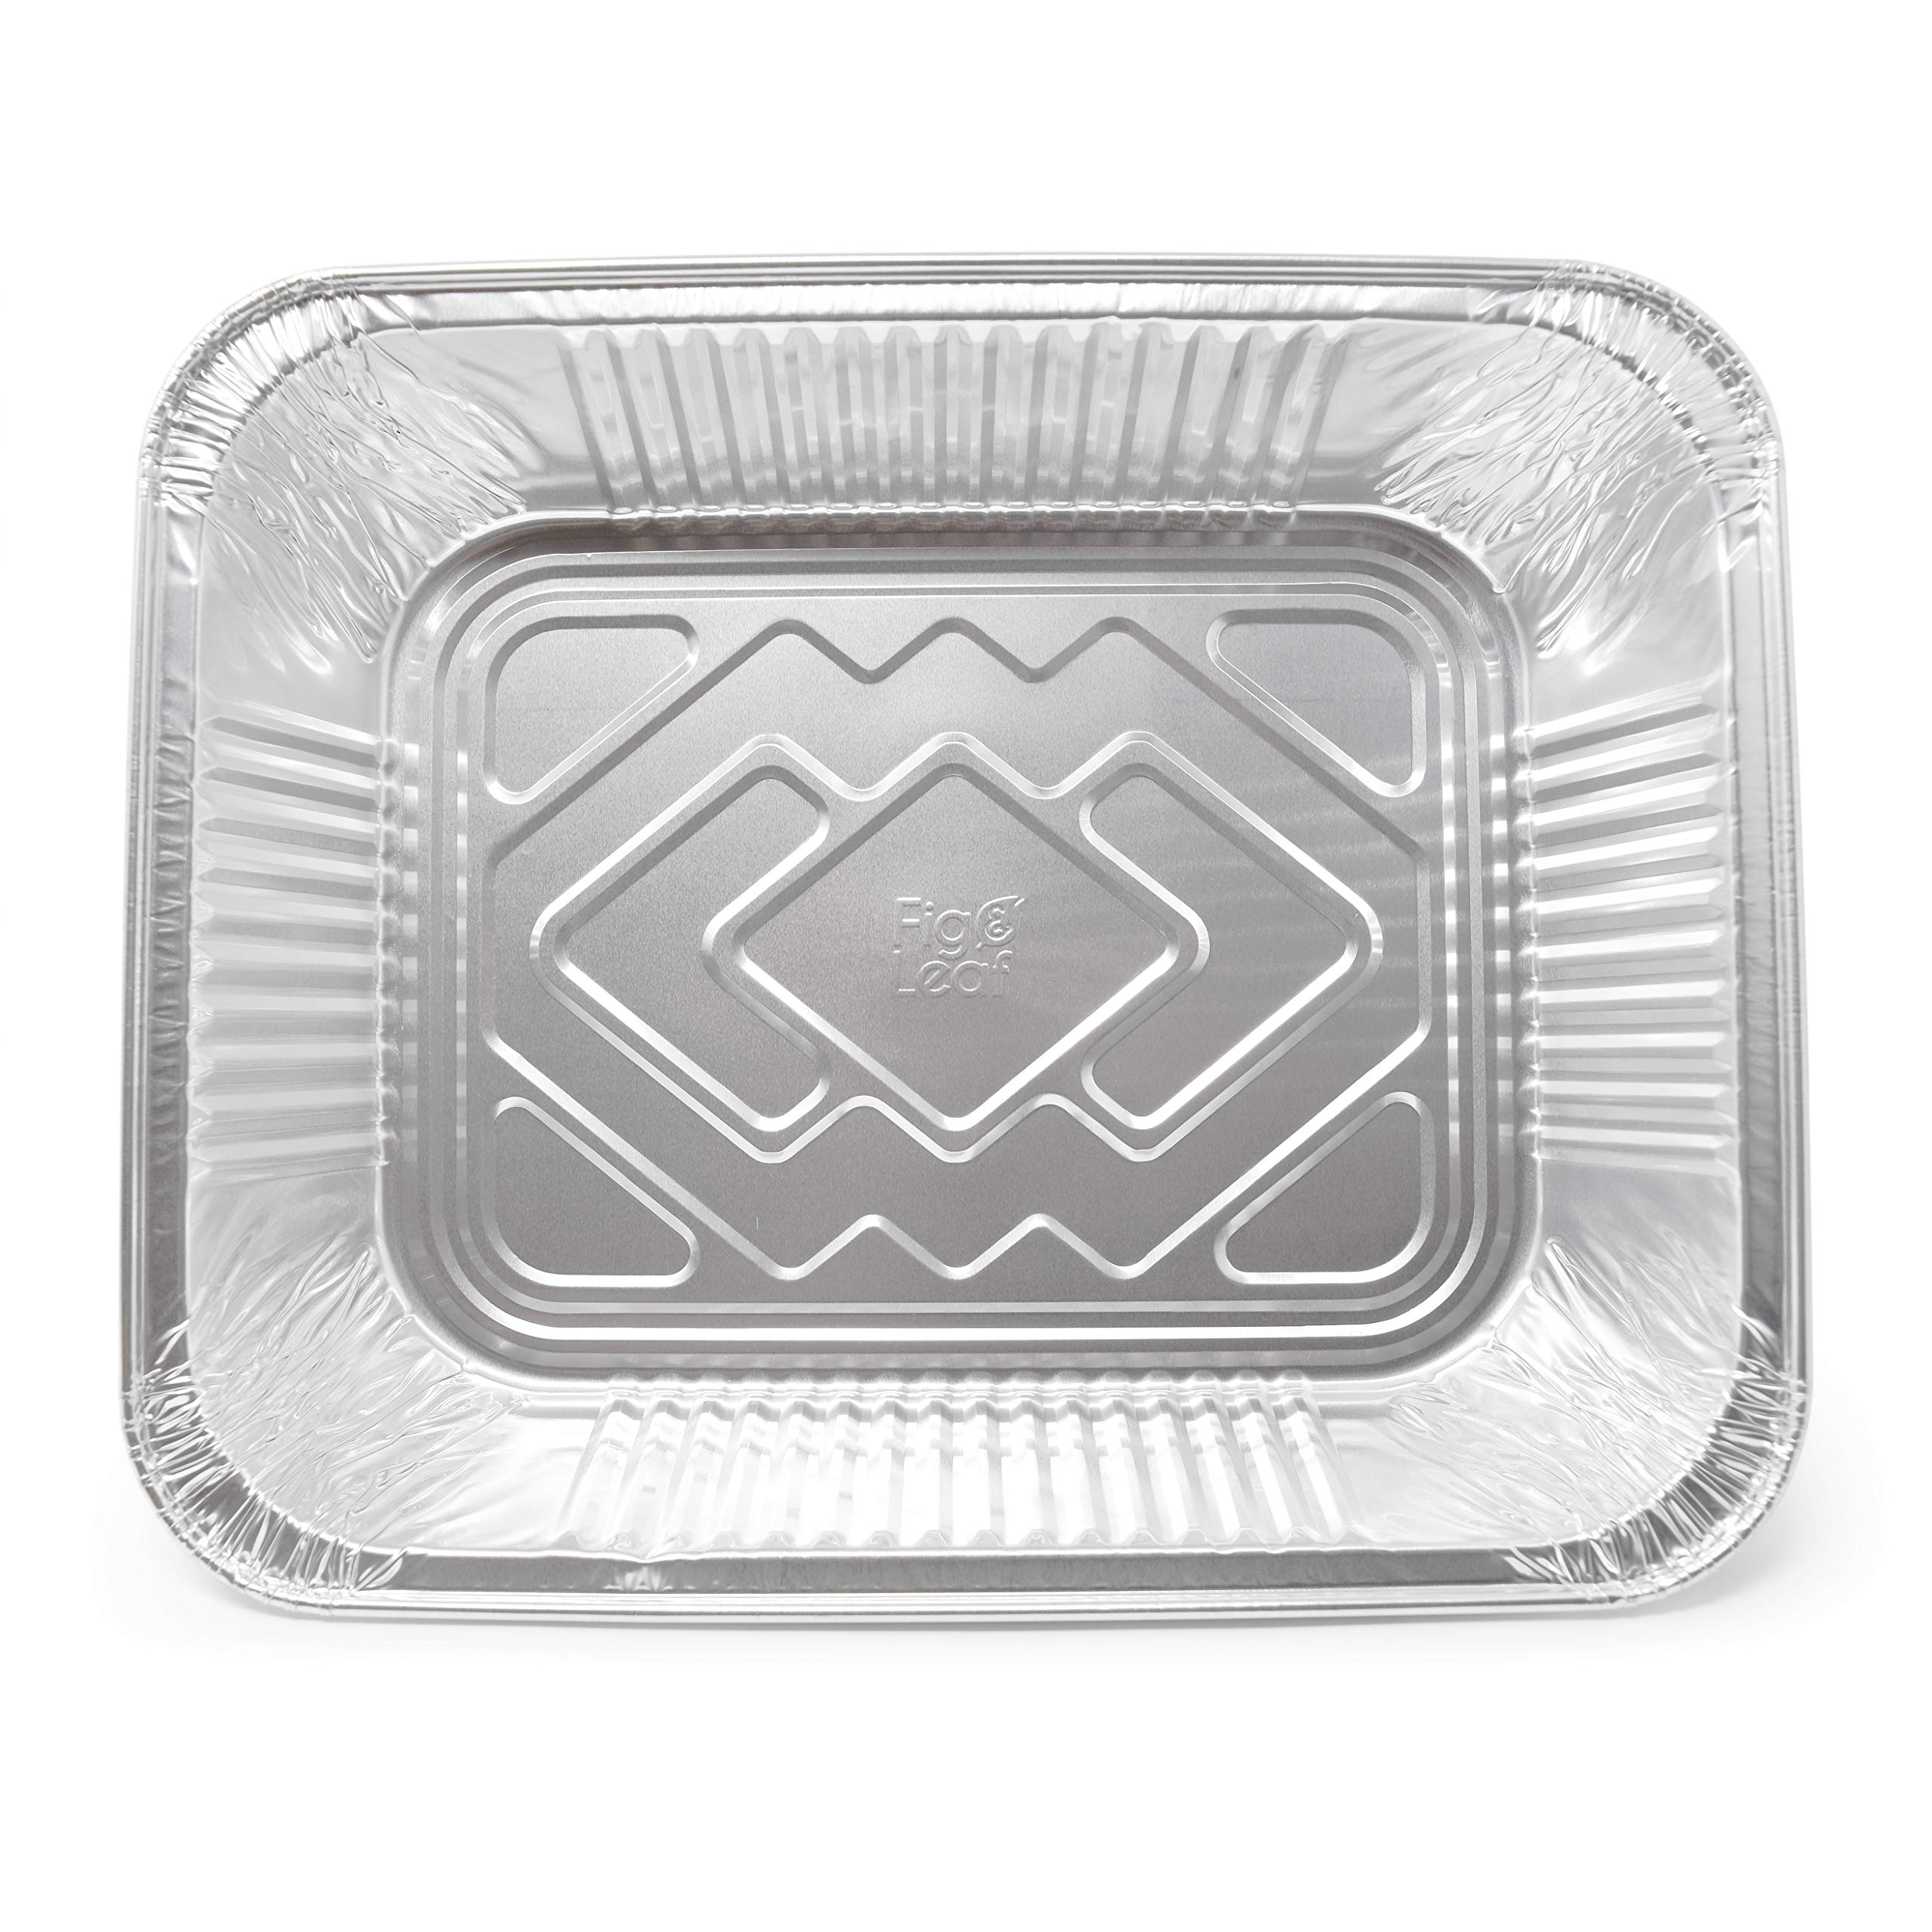 Fig and Leaf (40 Pack) Premium Chafing Pans 9'' x 13'' – Half Size Deep Pan Steam Table Pan l Top Baker's Choice Aluminum Foil for Roasting Potluck Reheating Catering Party BBQ Broiling Baking by Fig and Leaf (Image #4)